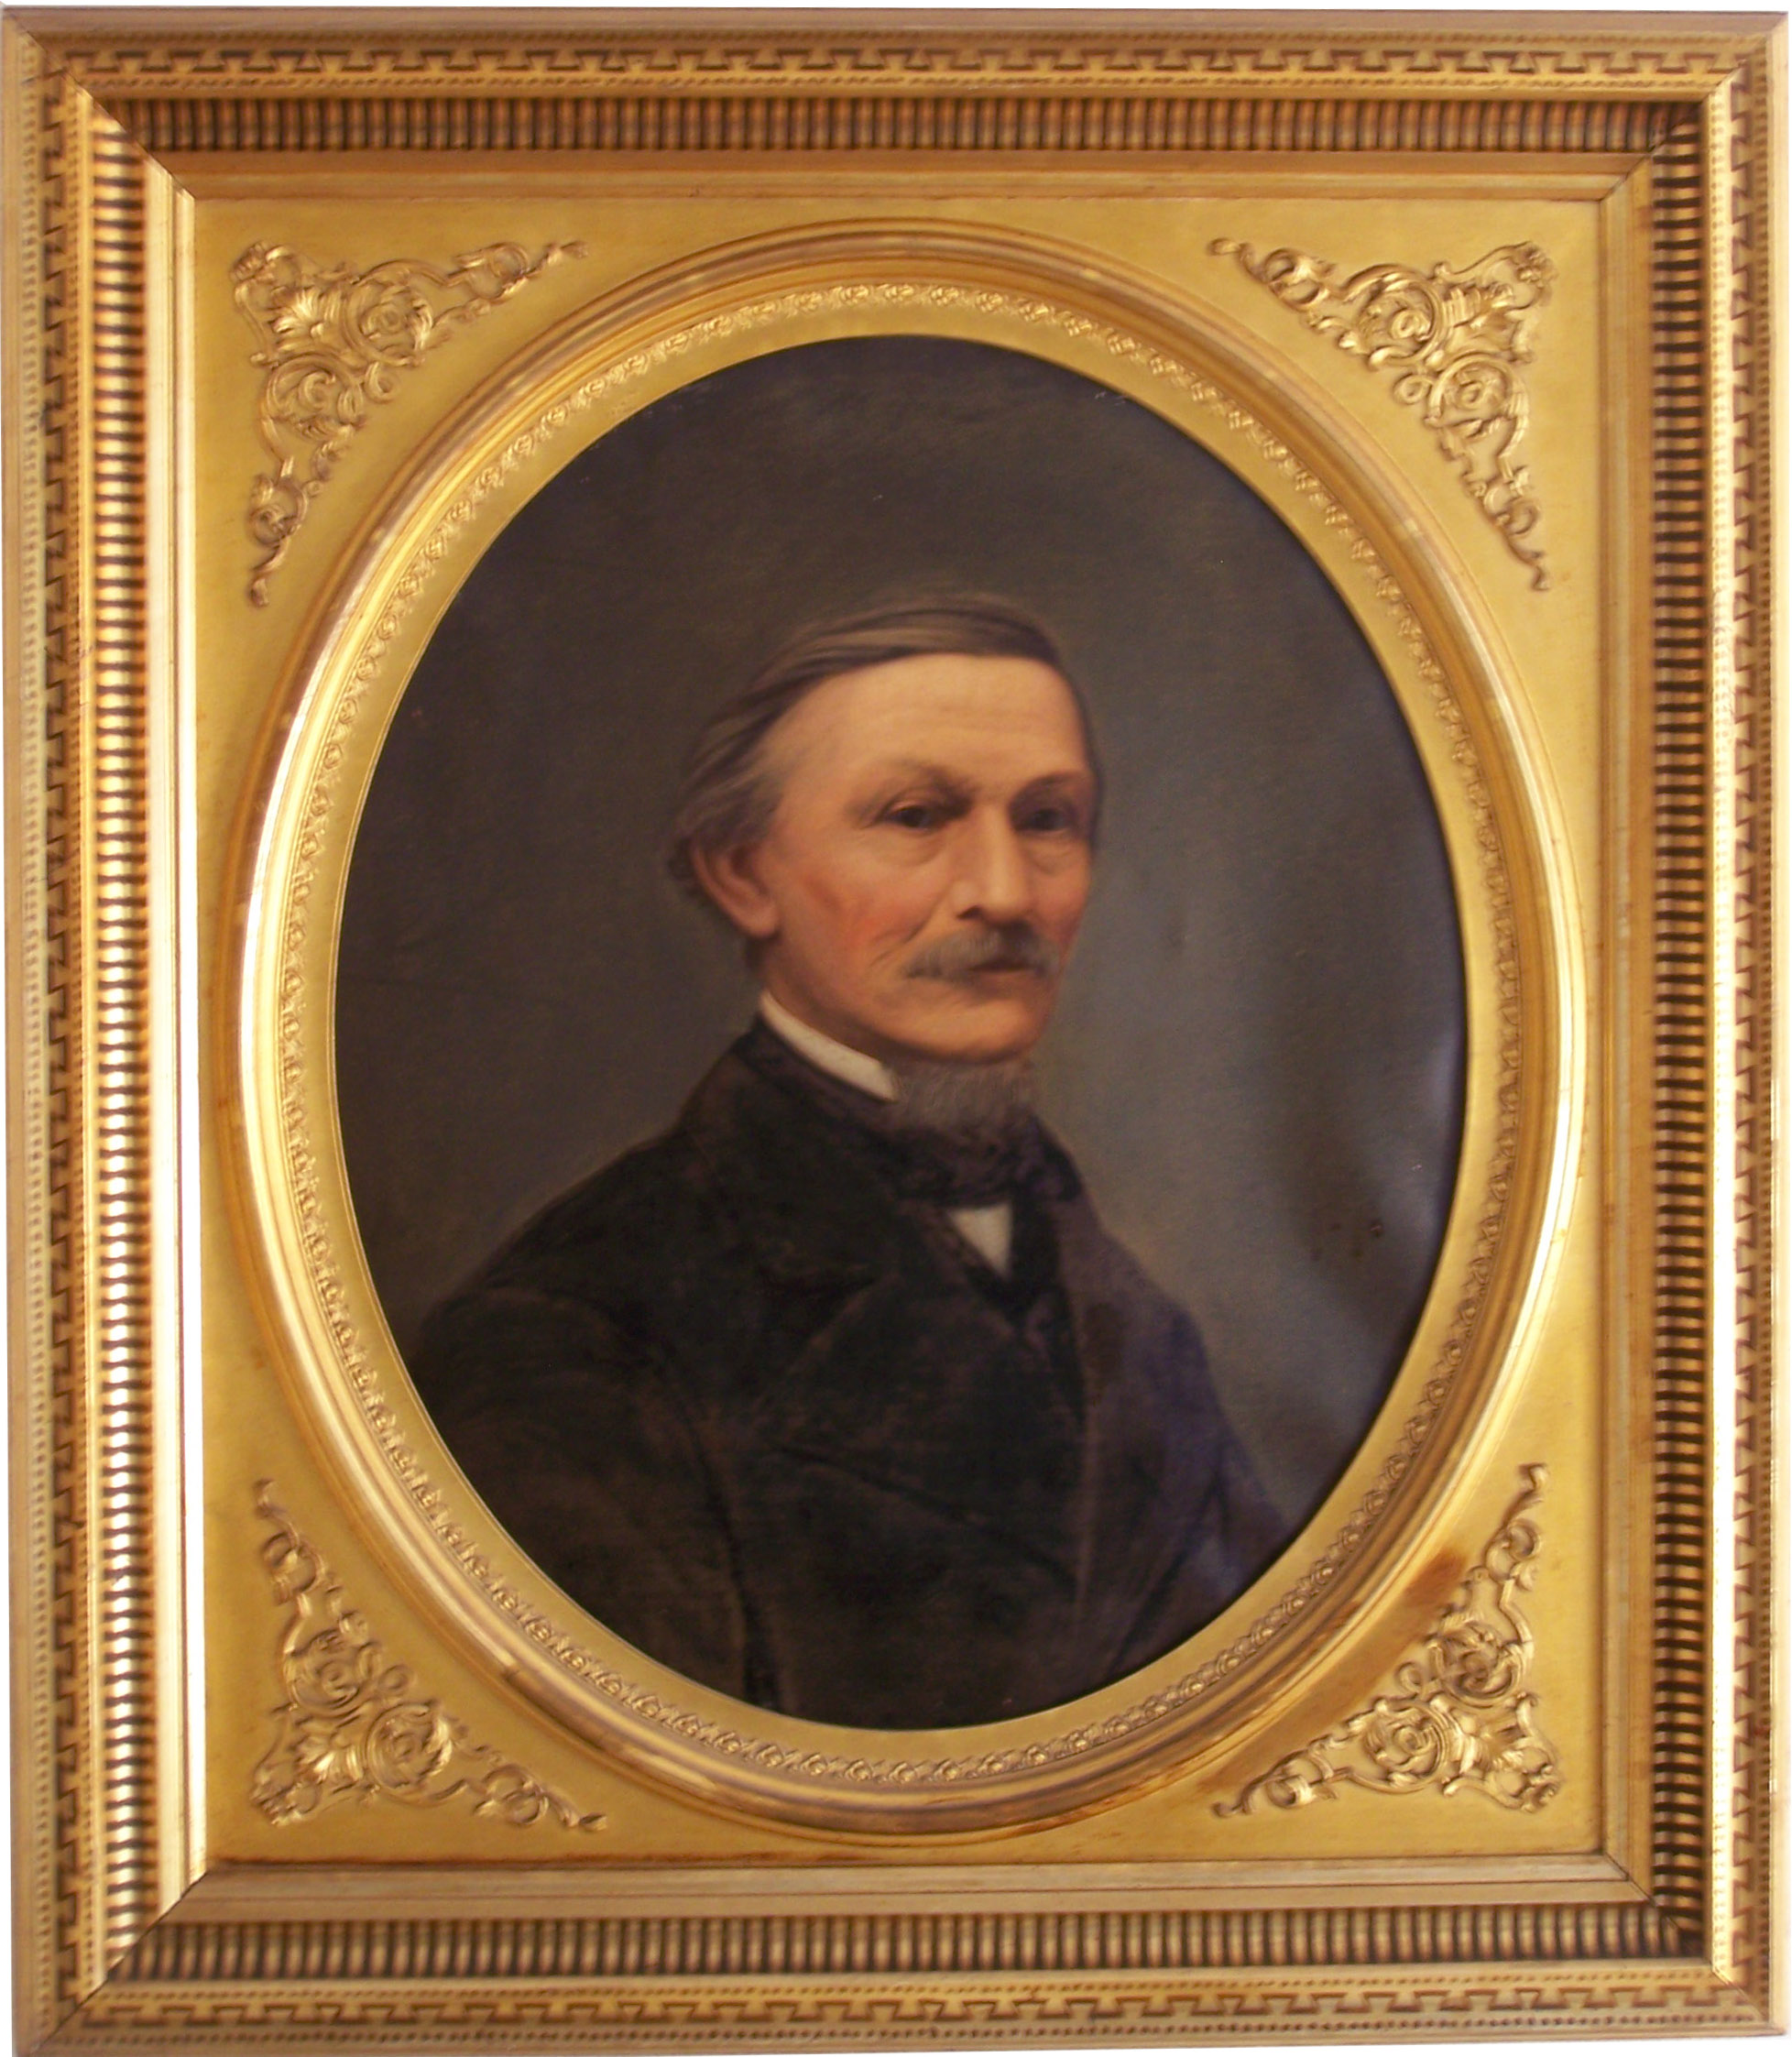 James Manning House, Old Frame Photo